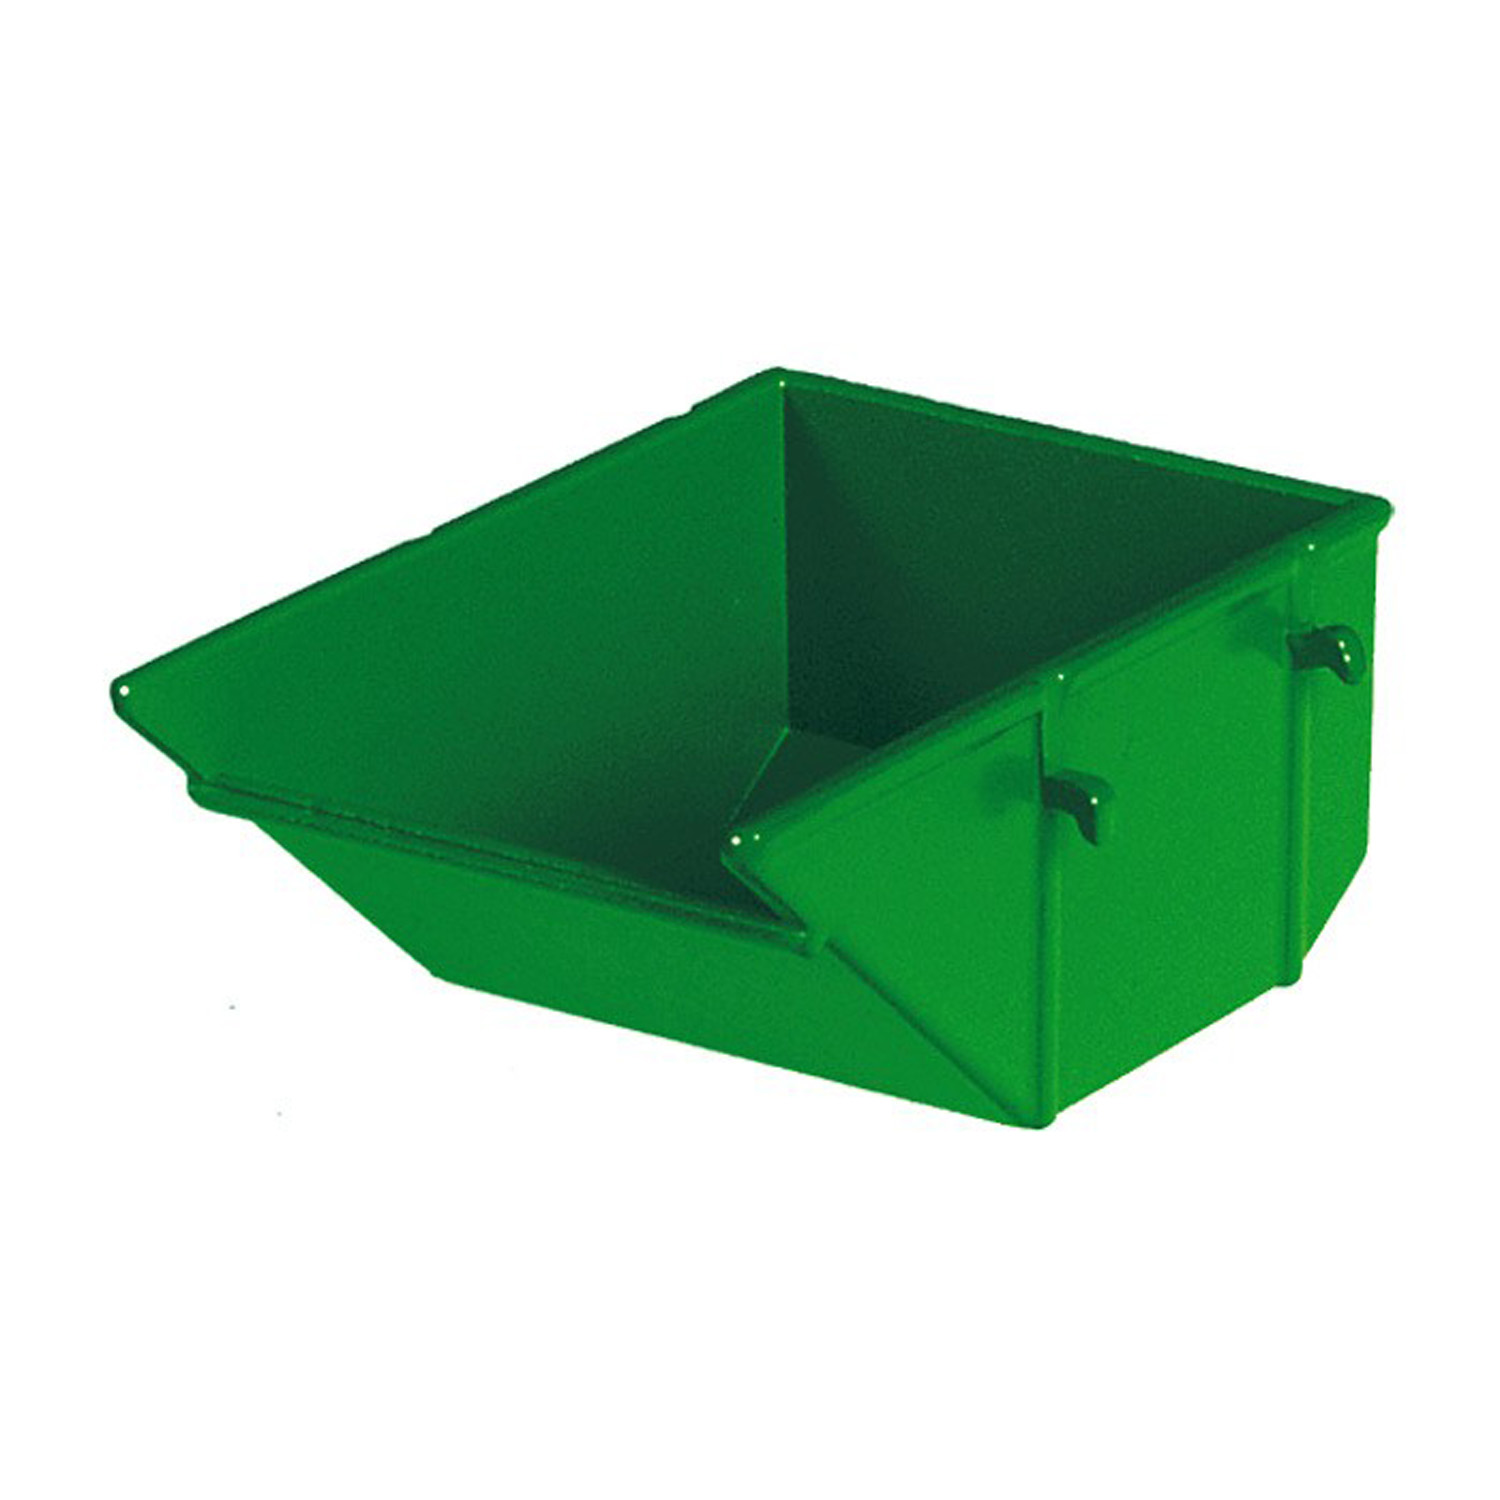 Construction waste container green for Construction container